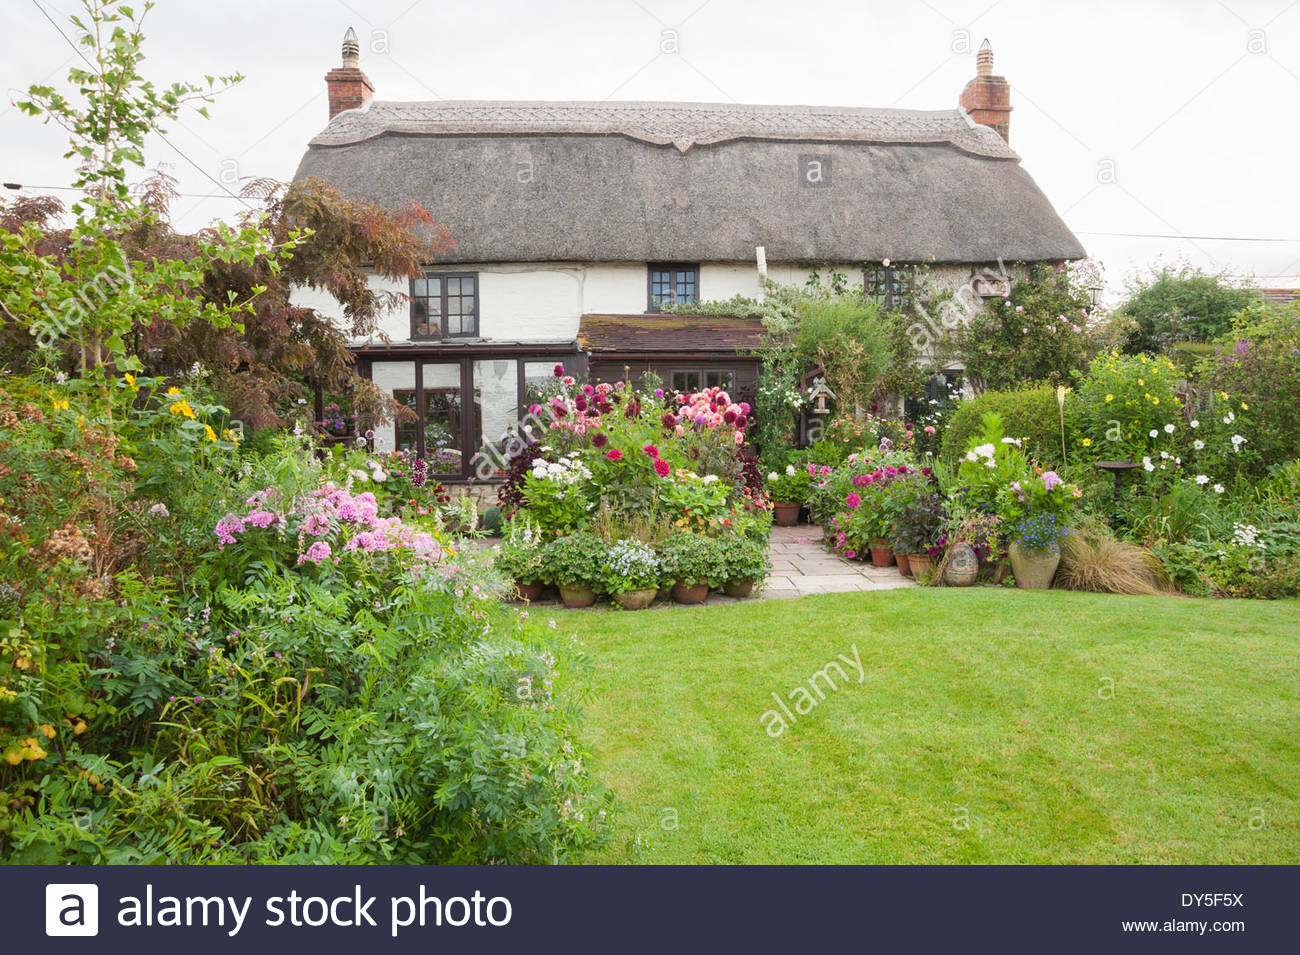 High Quality Thatched Cottage With Garden Full Of Dahlias, Shasta Daisies And Unusual  Annuals In Pots On Terrace, With Lawn. Hilltop, Dorset